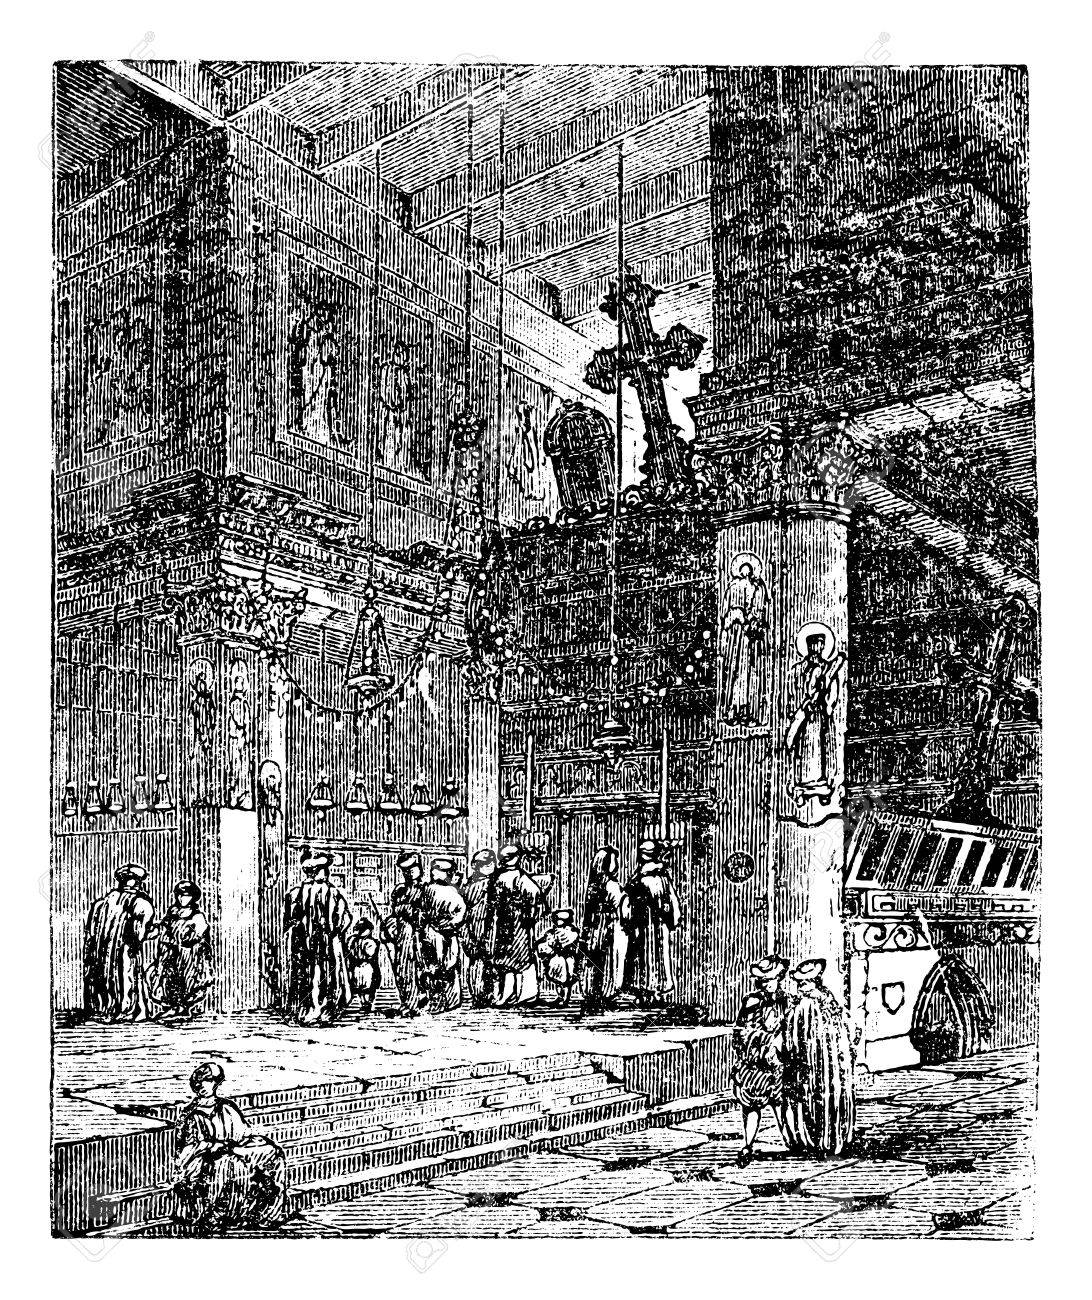 Church of the Nativity, church, Bethlehem, Israel, old engraved illustration of Church of the Nativity, Bethlehem, Israel, in the 1890s Stock Vector - 13772343